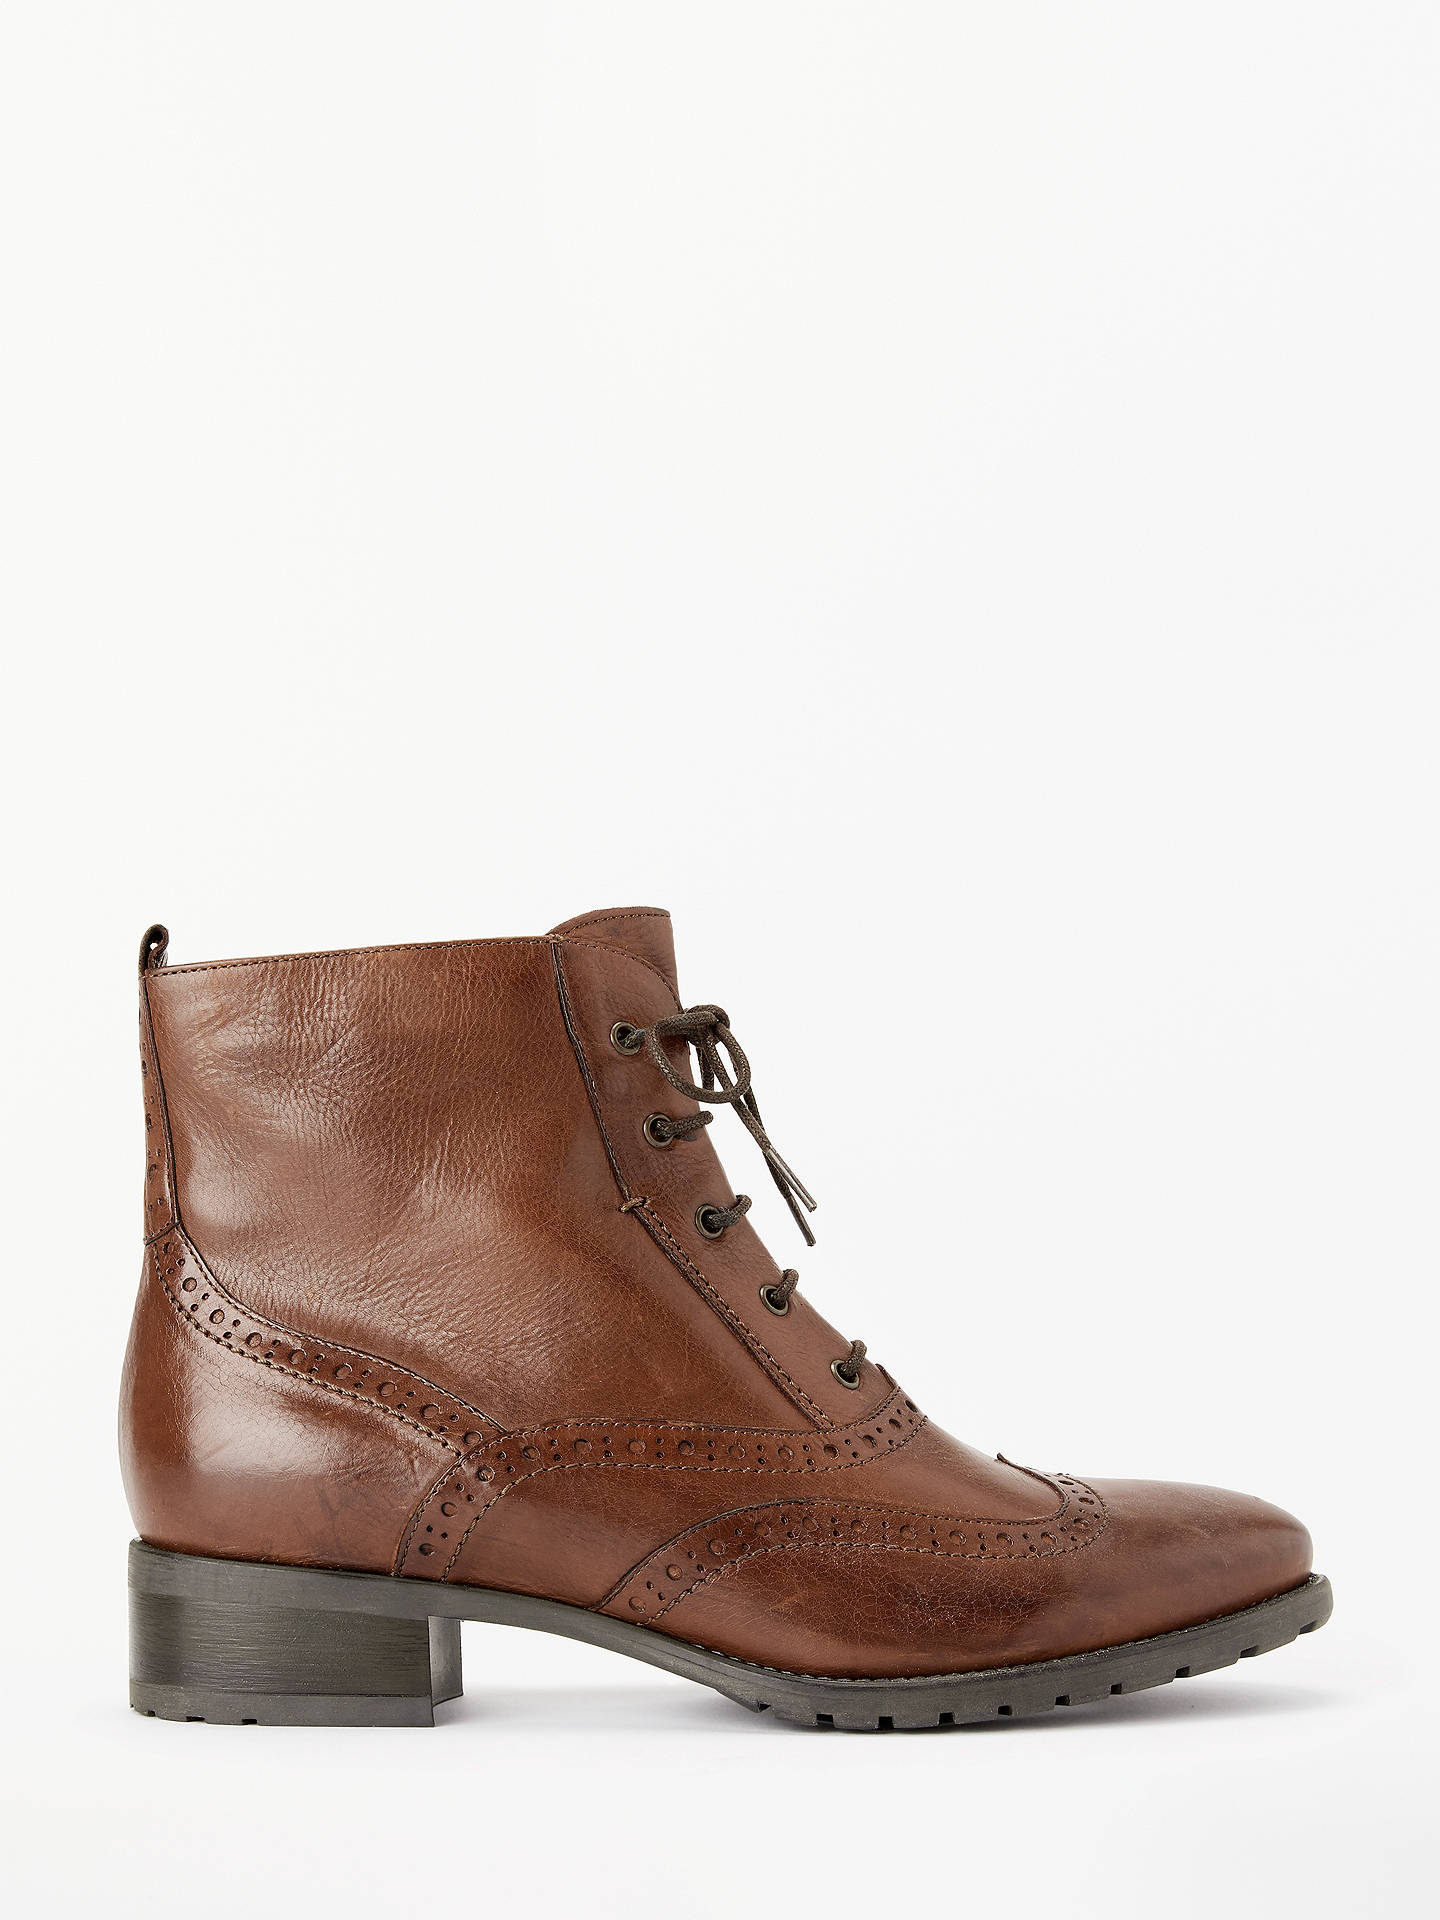 401b965c7da31 Buy John Lewis & Partners Cambridge Lace-Up Ankle Boots, Brown Leather, 3  ...